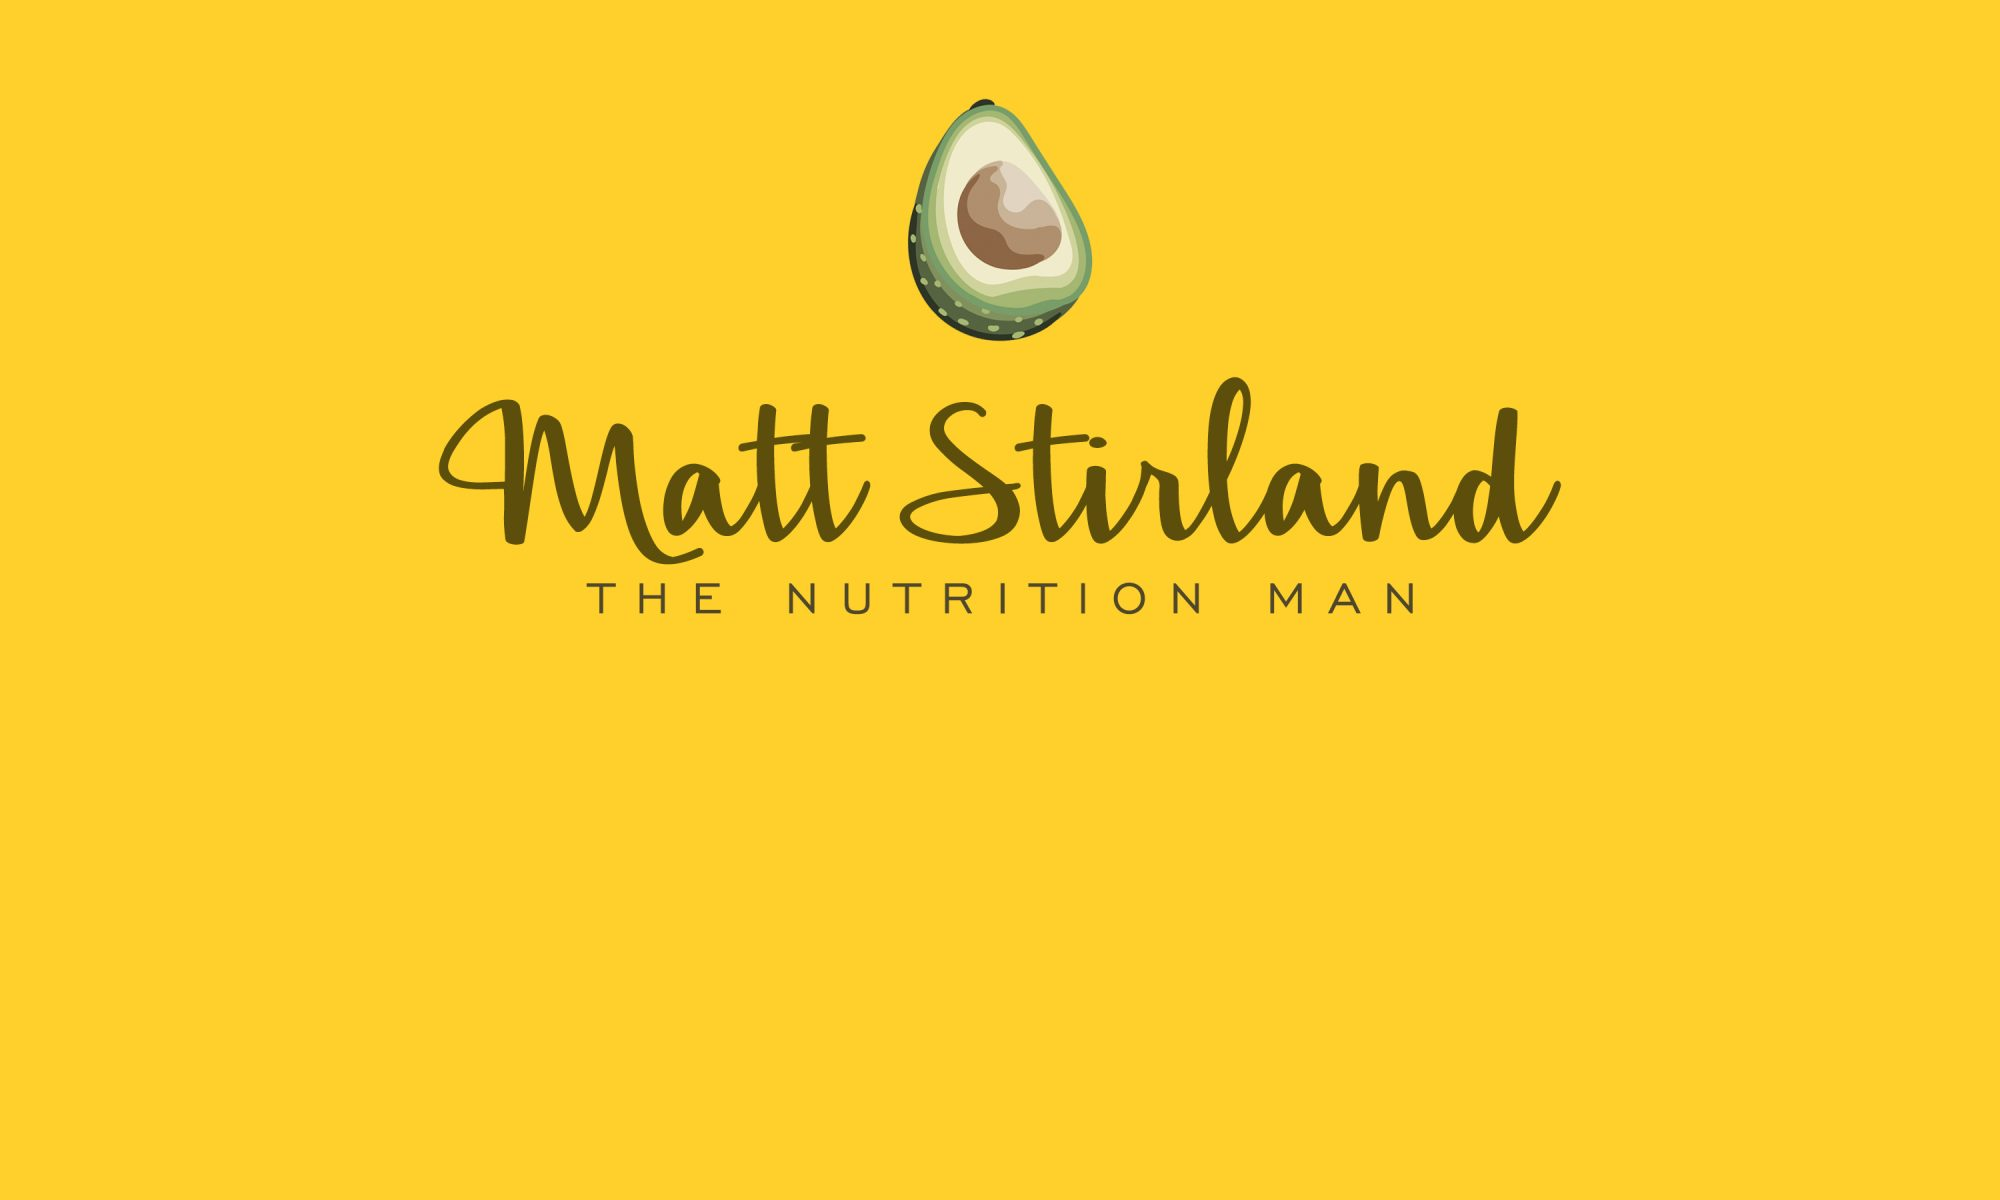 Matt Stirland #TheNutritionMan